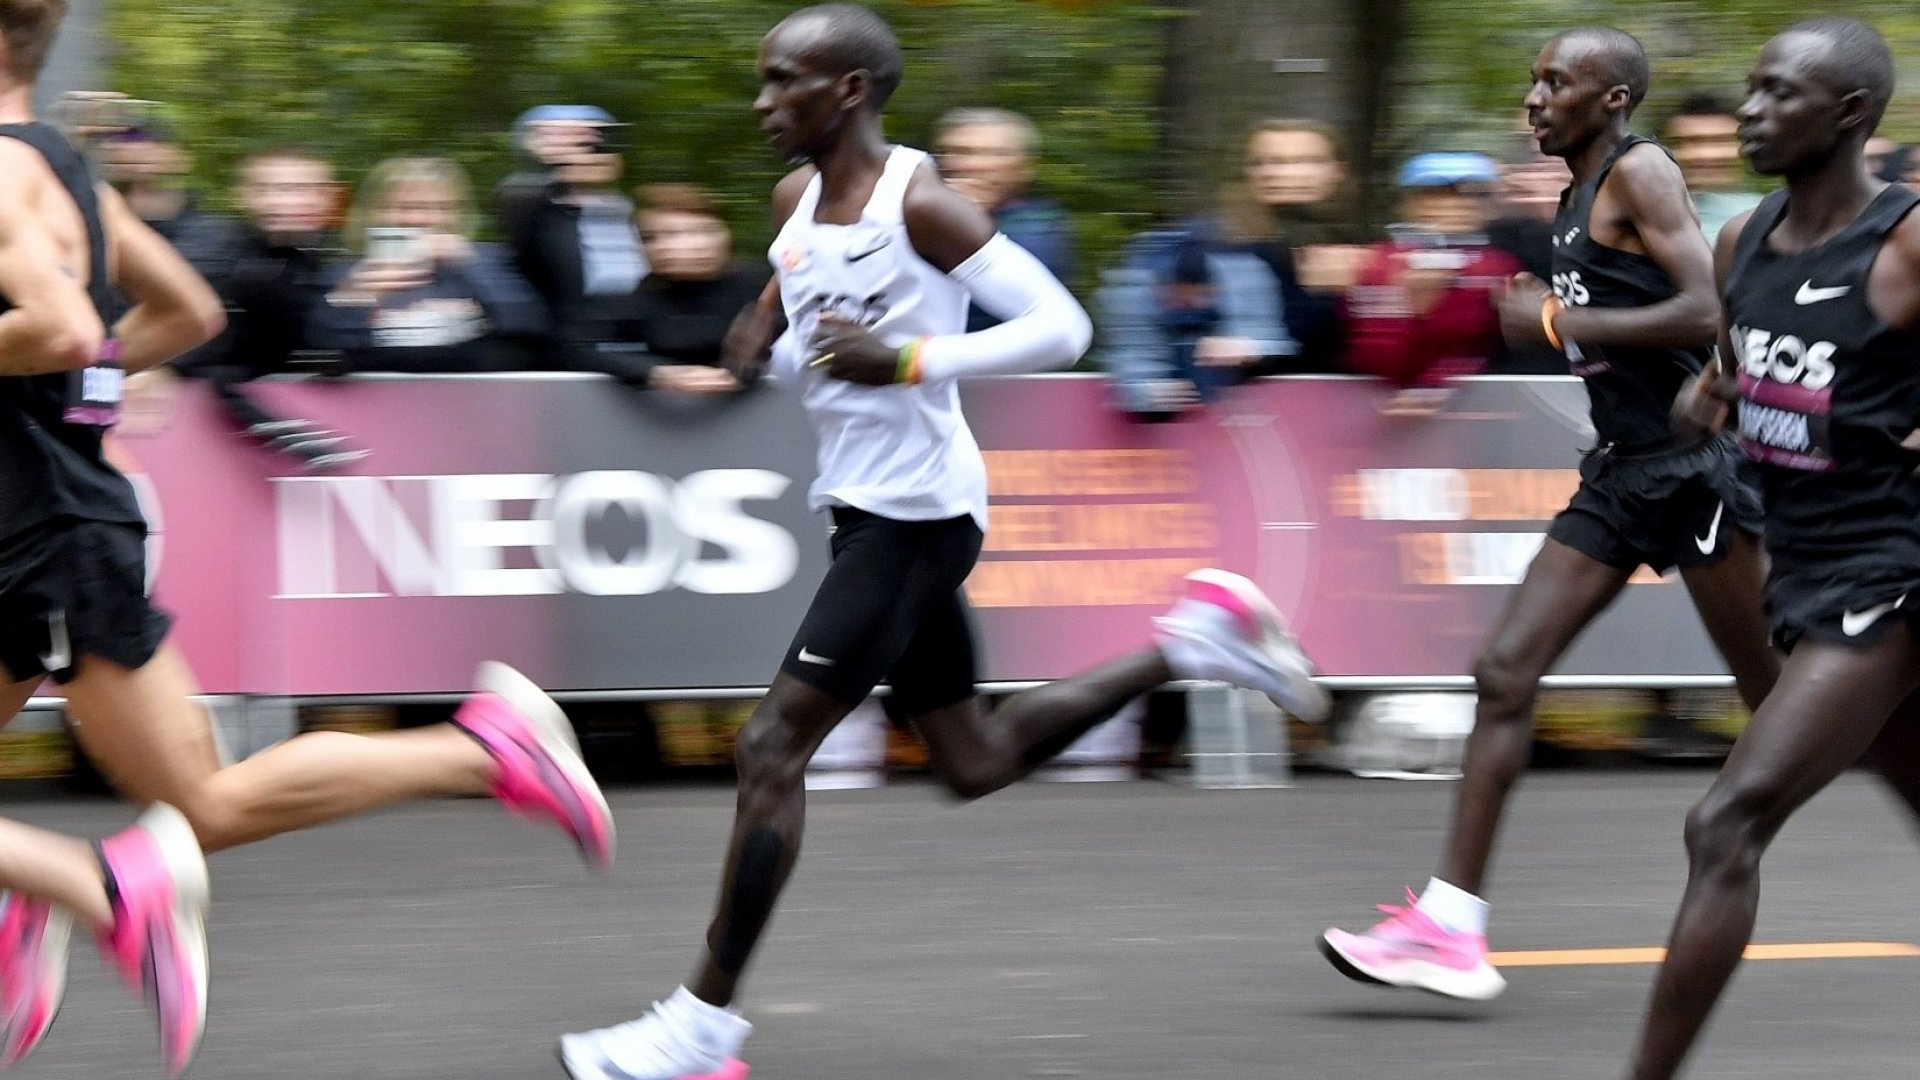 constante Umeki clima  Nike Vaporfly Shoes Helped Eliud Kipchoge Run a Marathon in Under 2 Hours.  Should They Be Banned? | Inc.com